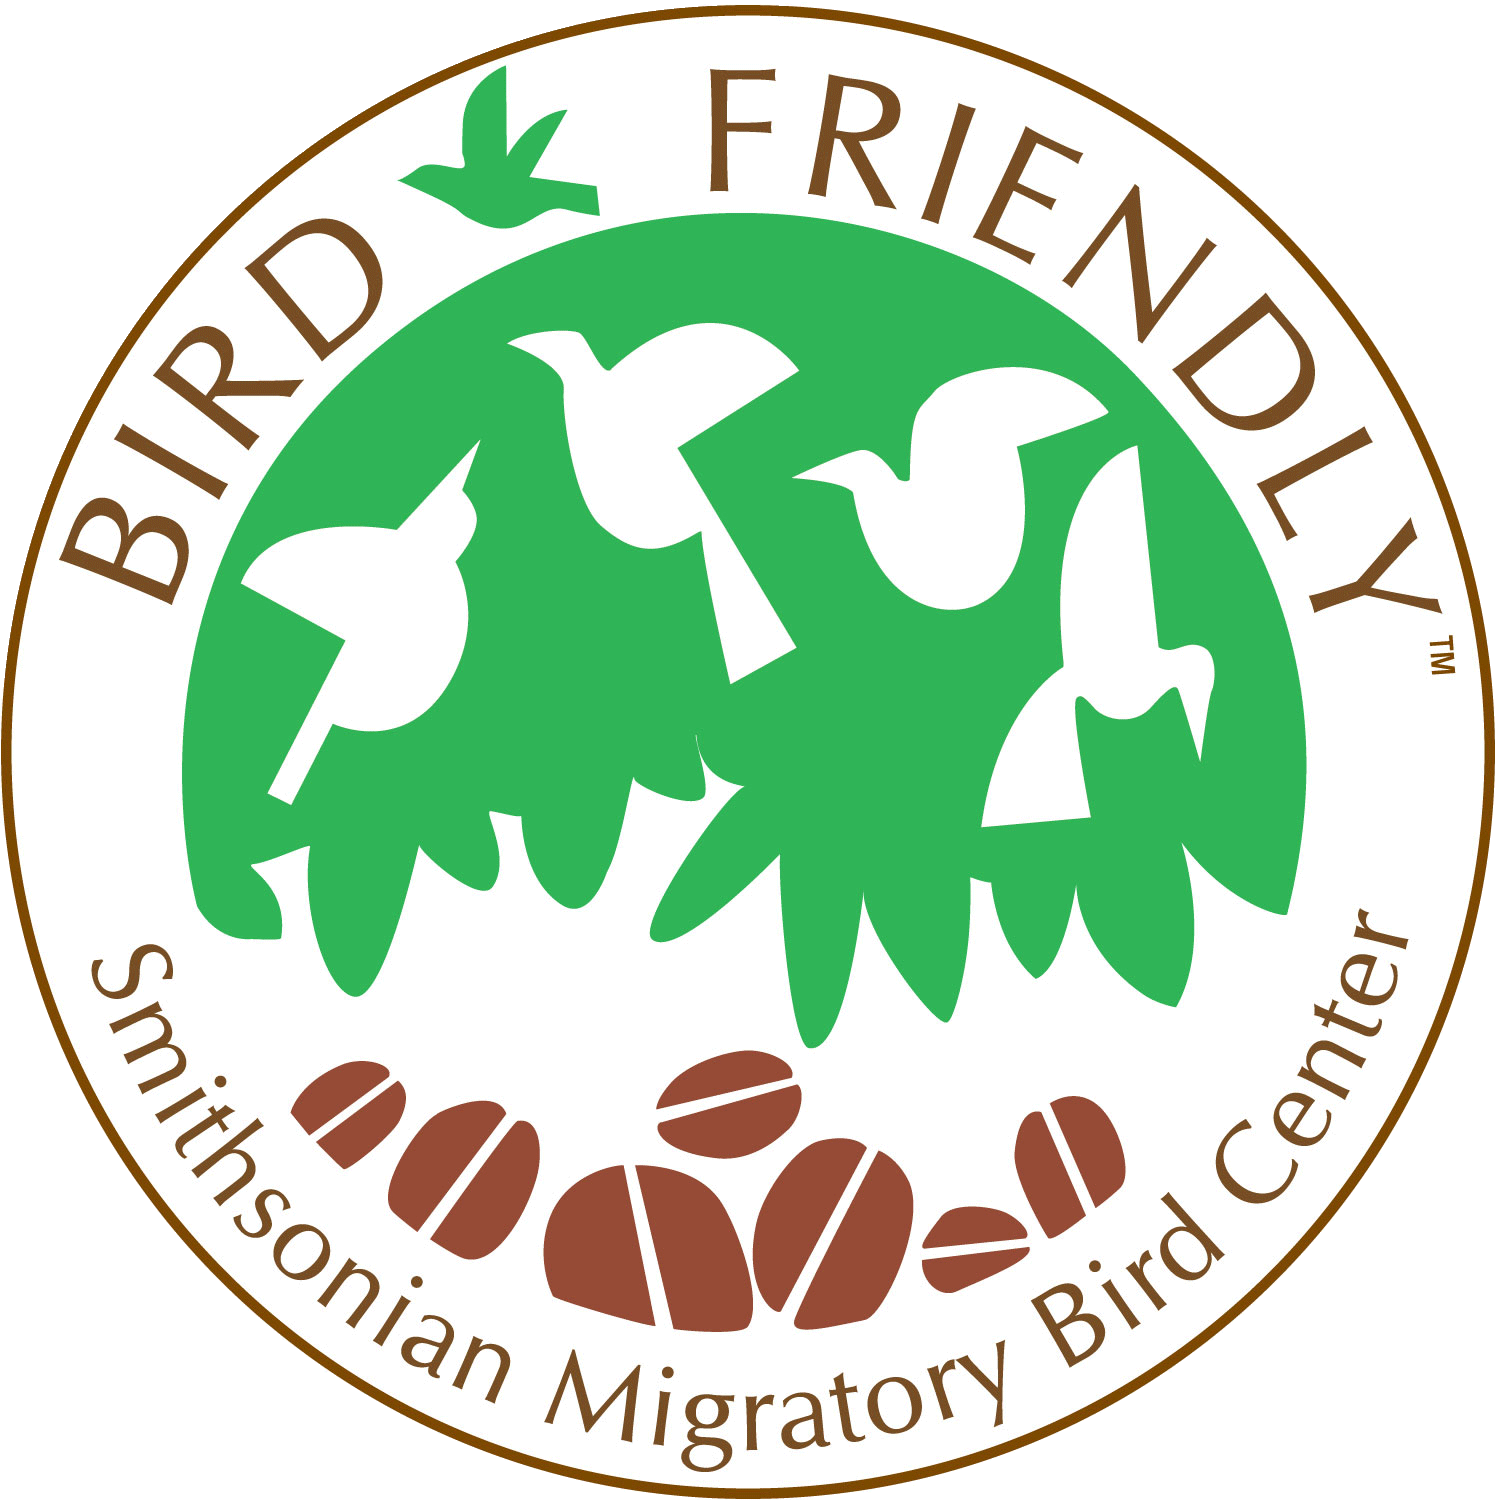 Smithsonian-certified Bird Friendly Coffee carries this logo